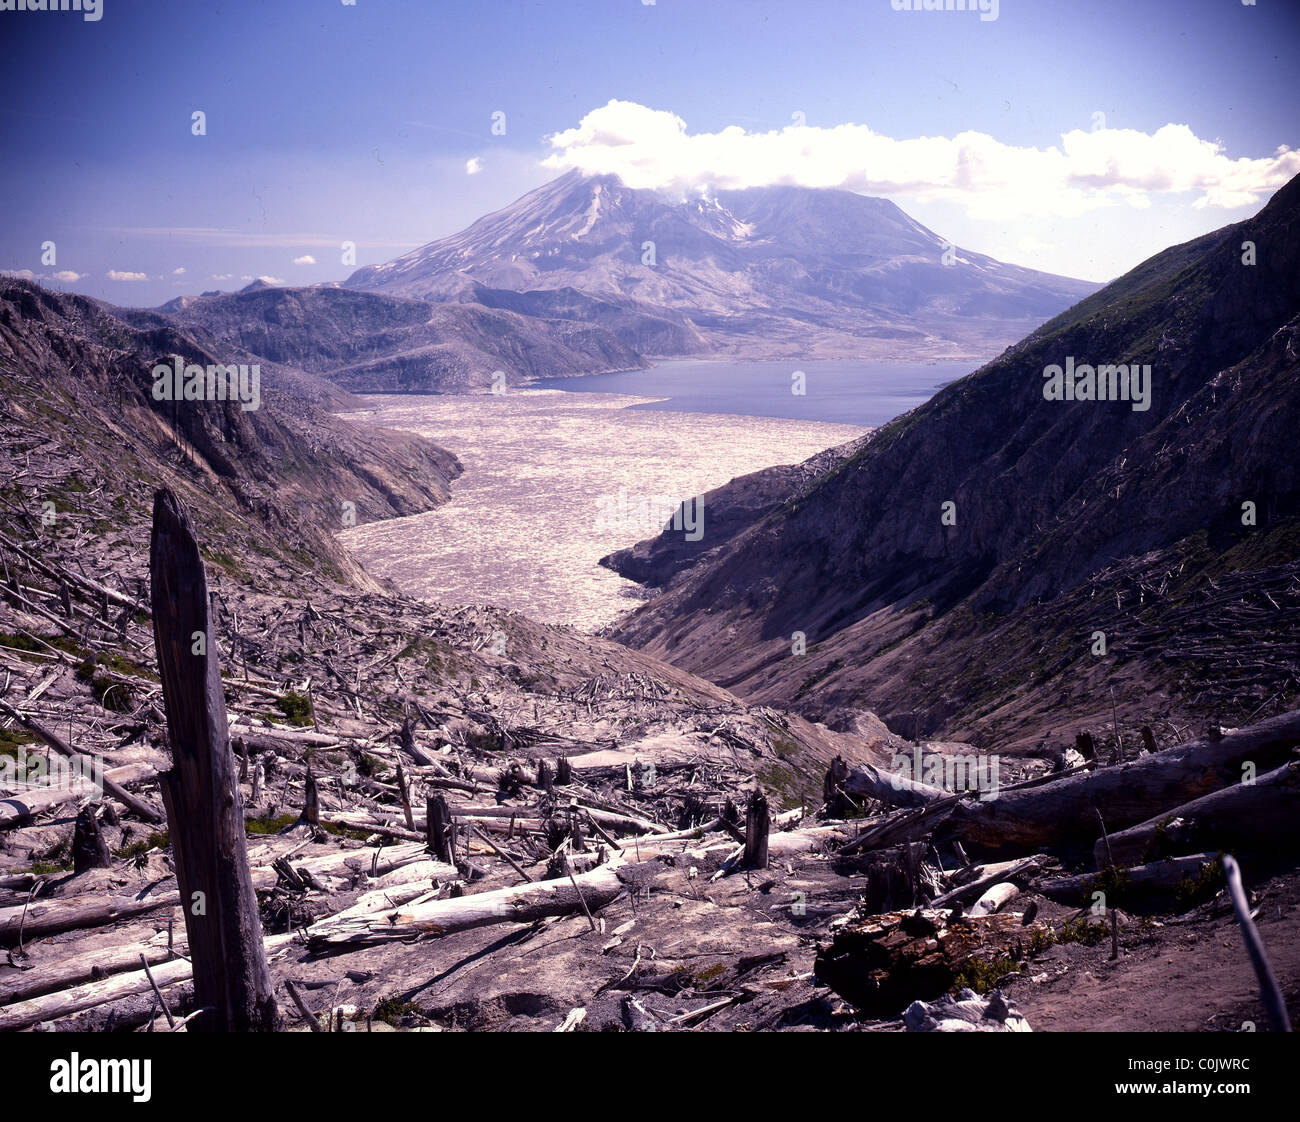 Mount saint helens eruption 1980 before and after